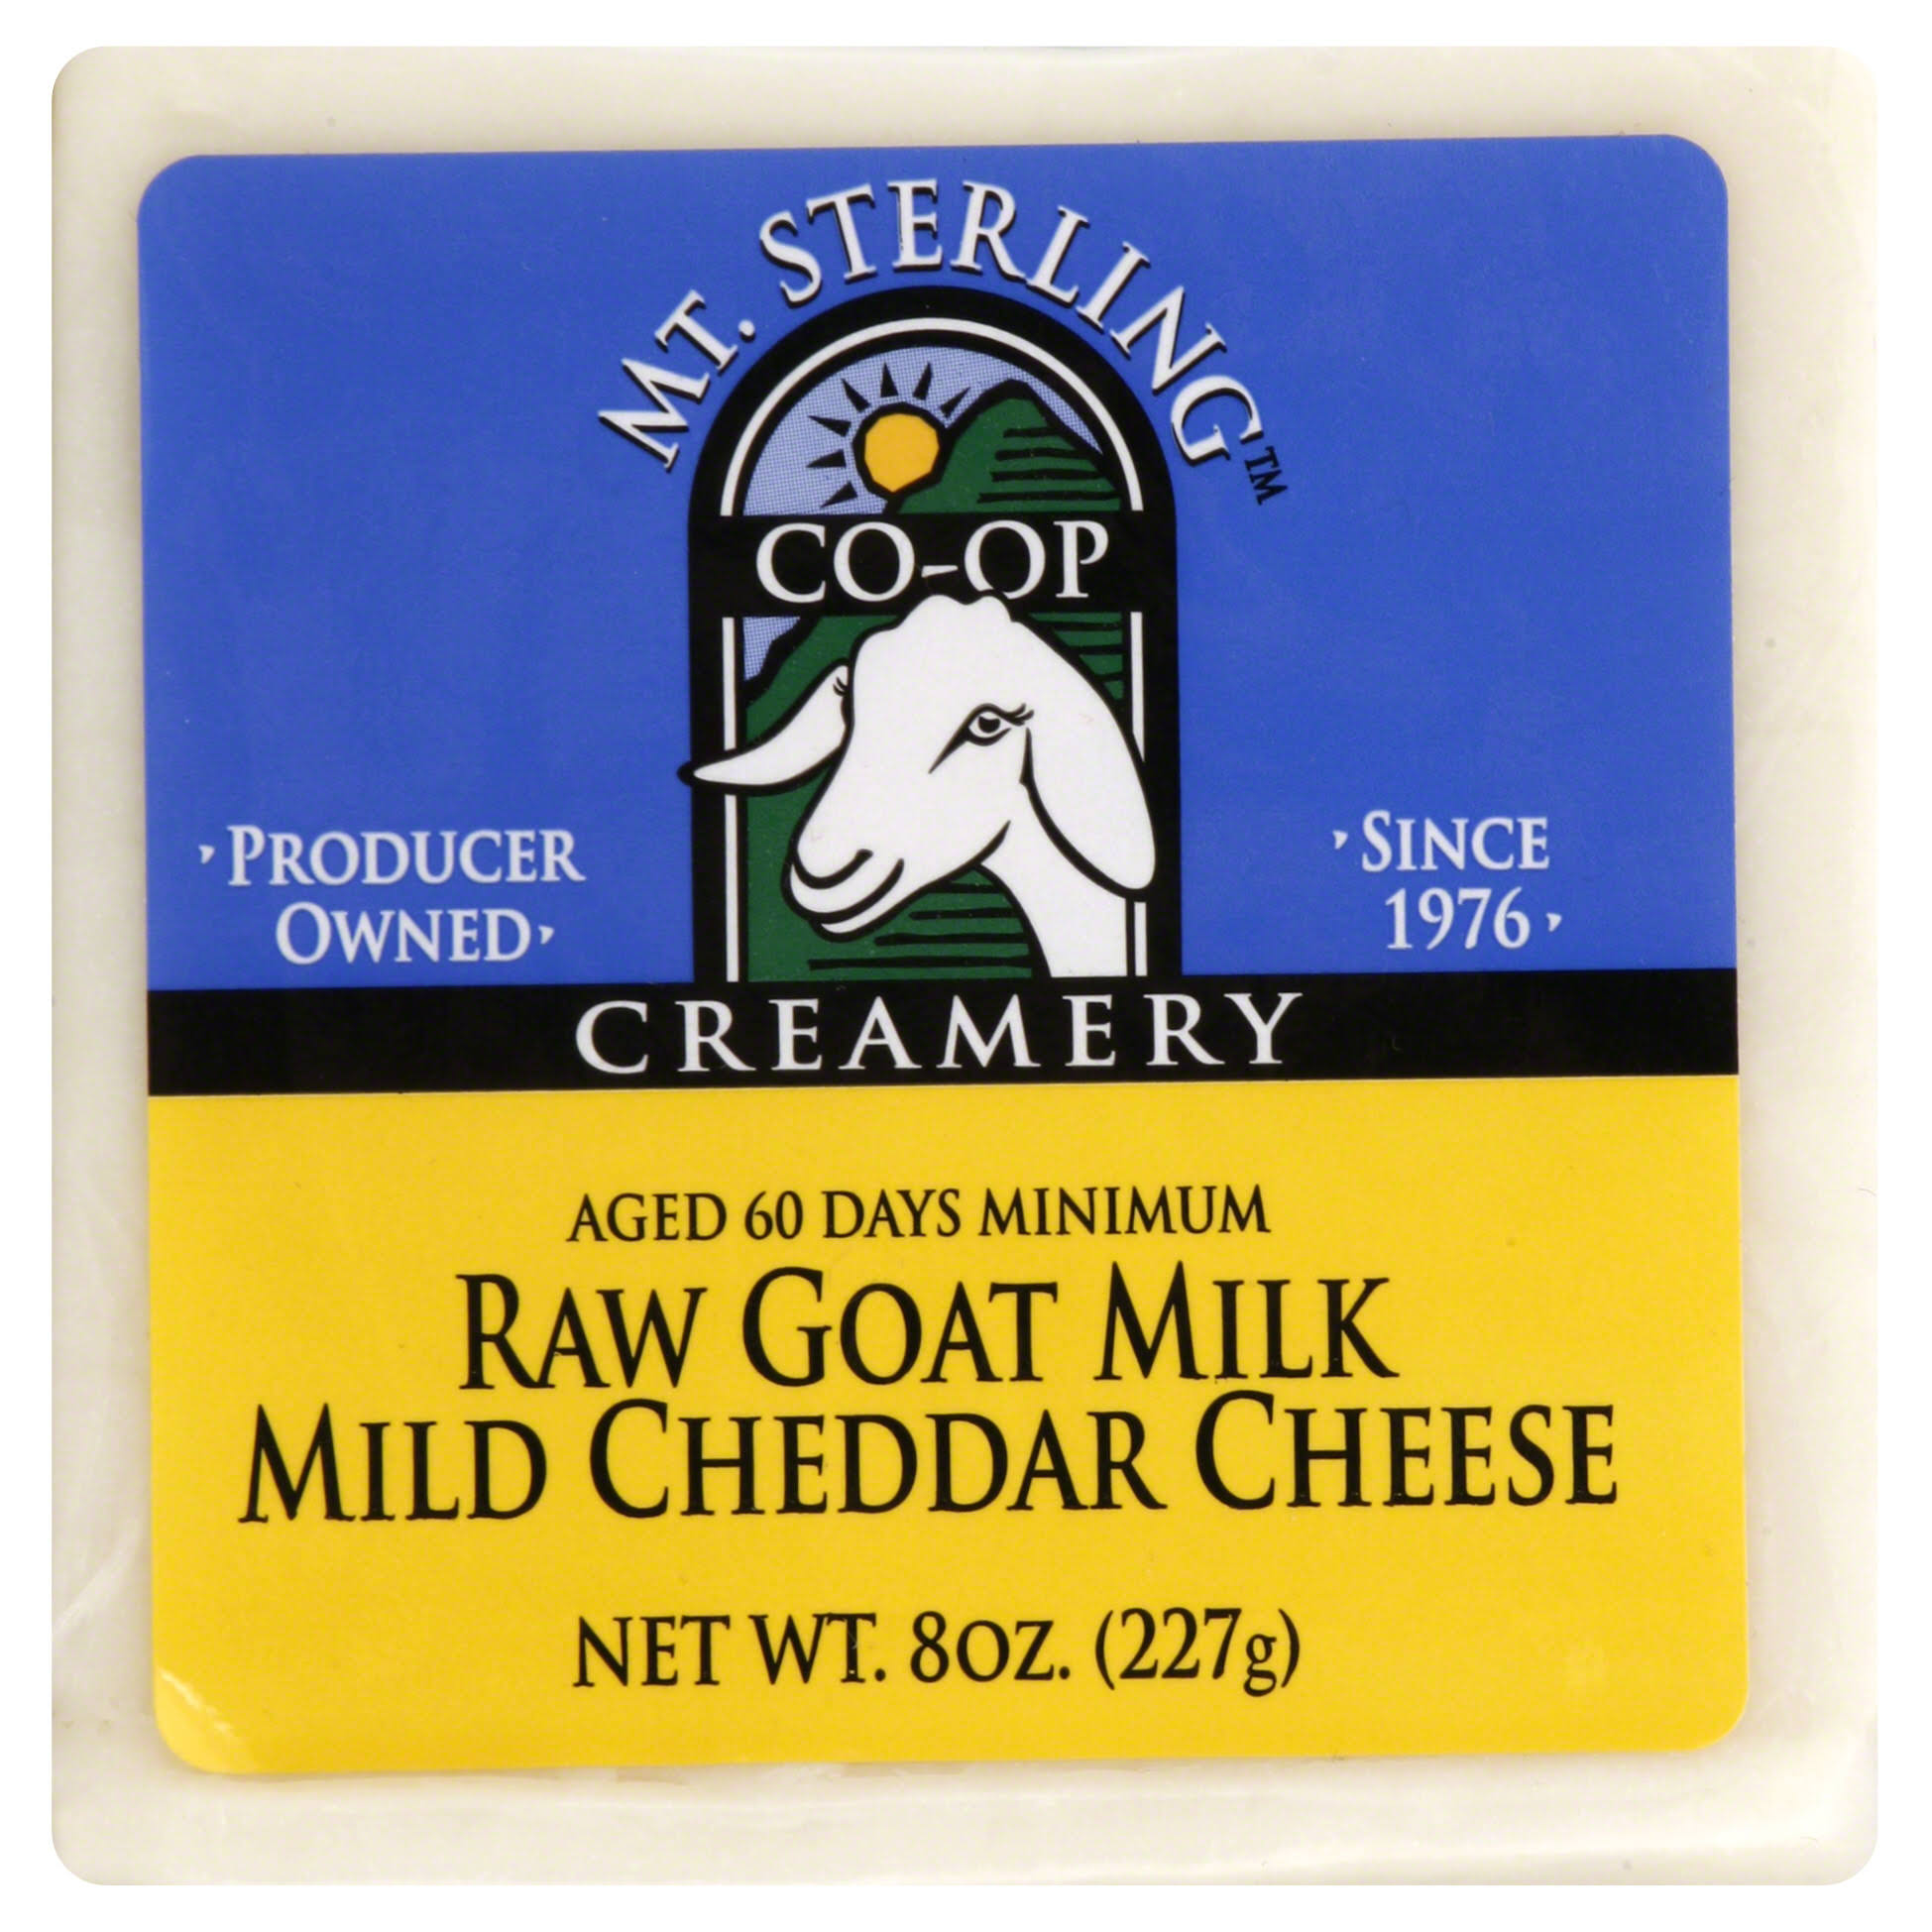 Mt Sterling Creamery Cheese, Mild Cheddar, Raw Goat Milk - 8 oz